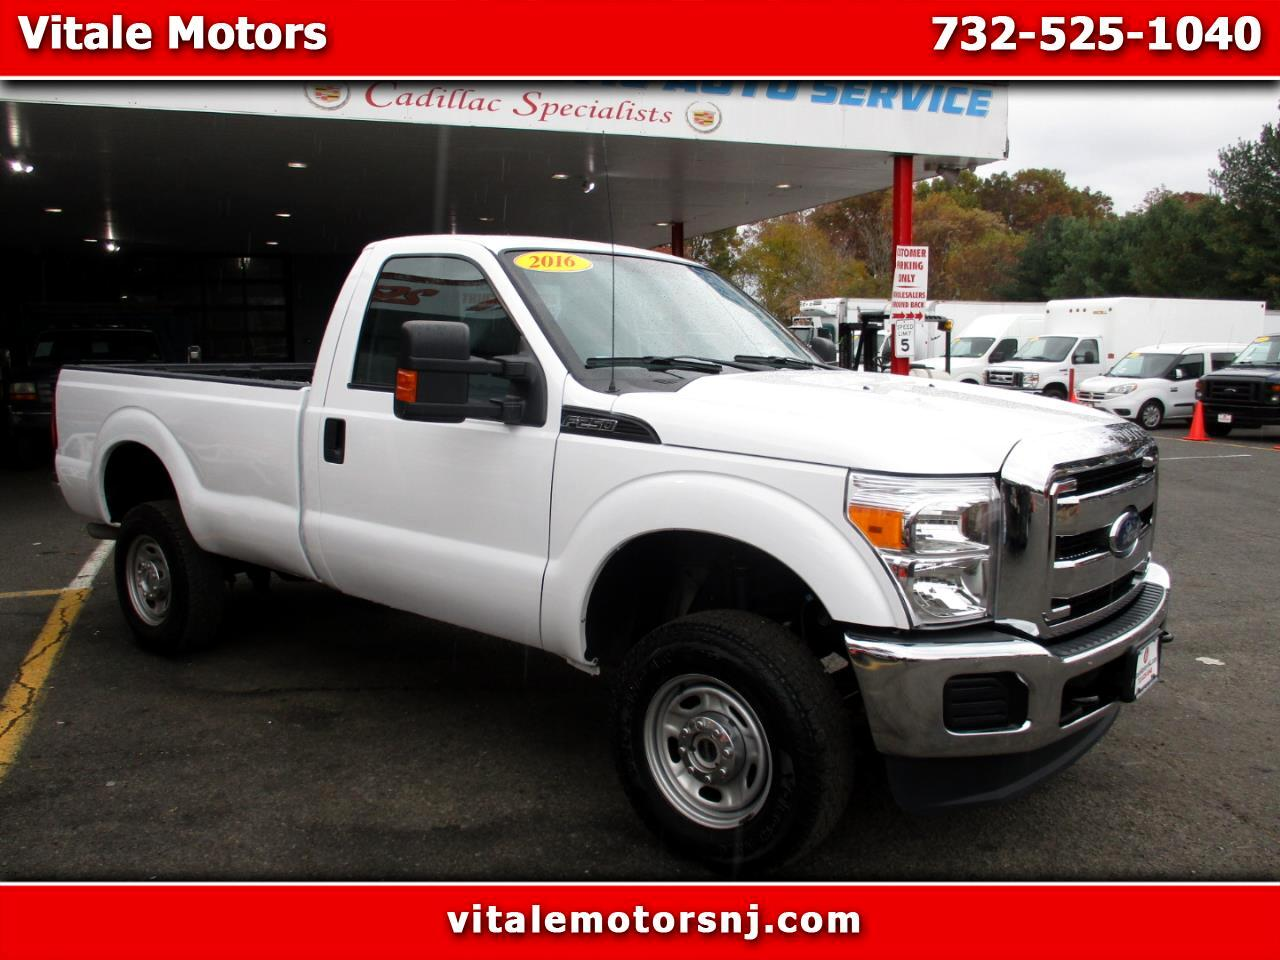 2016 Ford F-250 SD XL 4X4 LONG BED REG. CAB